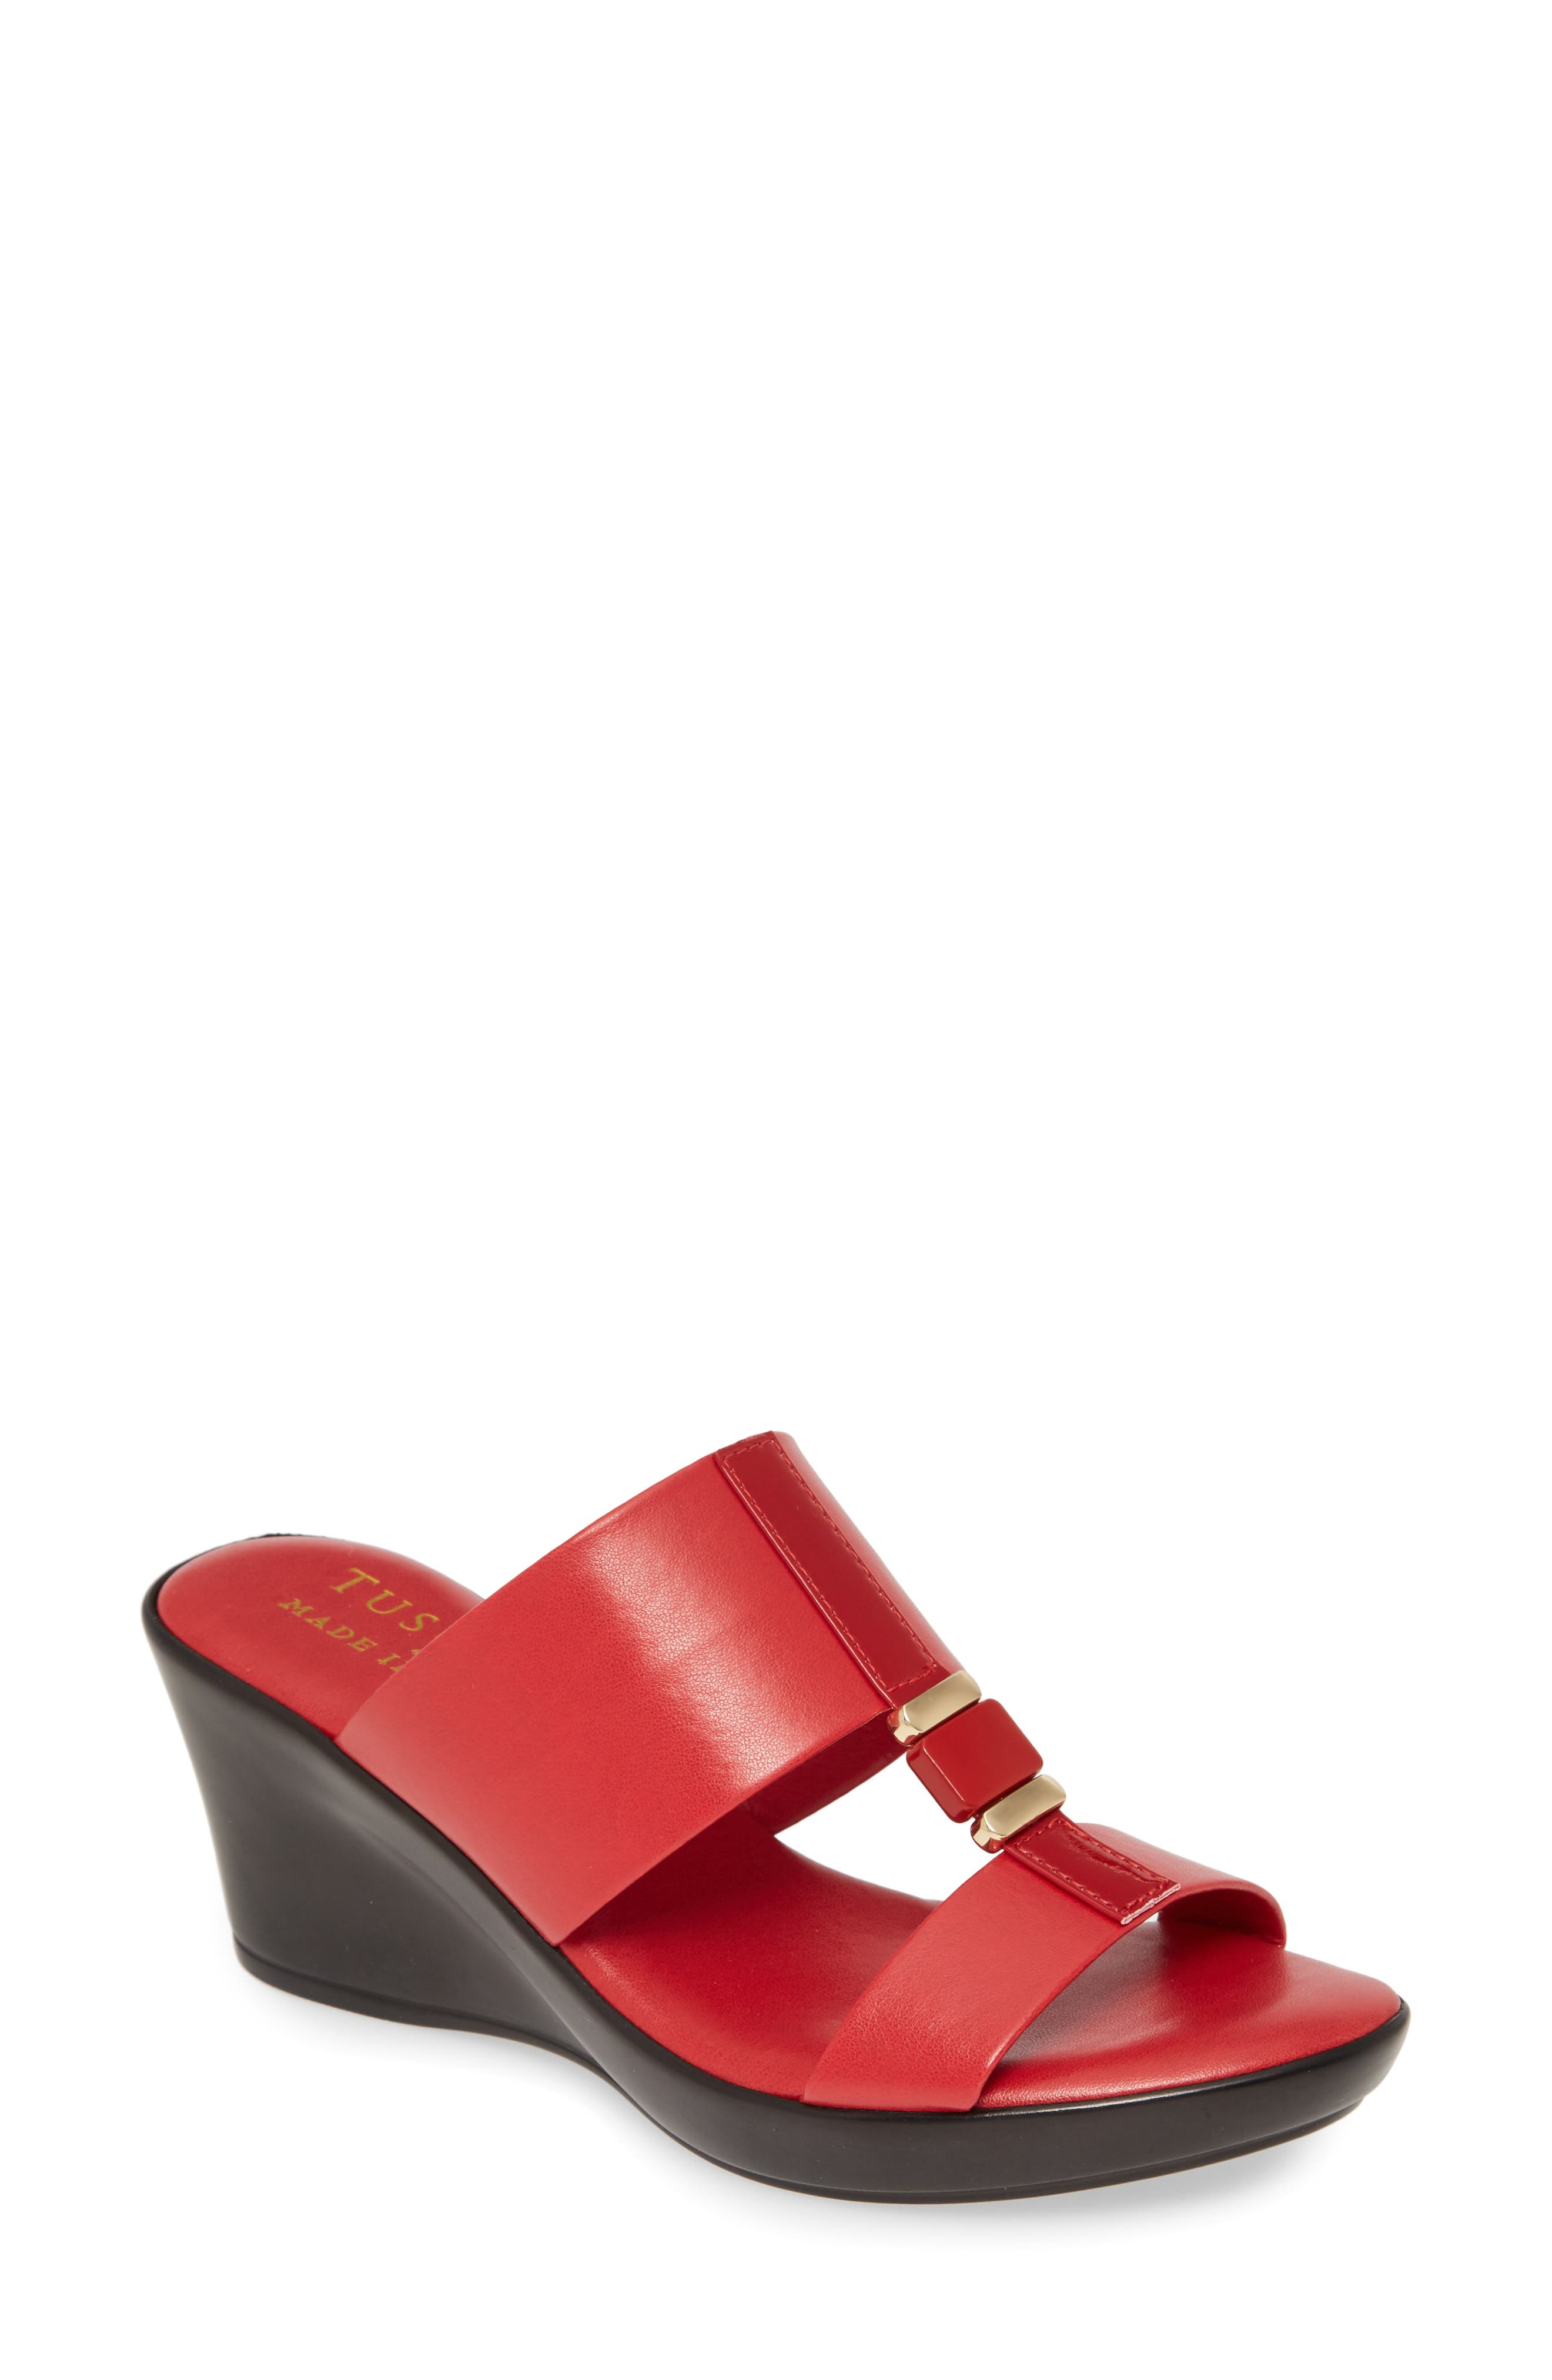 TUSCANY by Easy Street® Shoes | Nordstrom